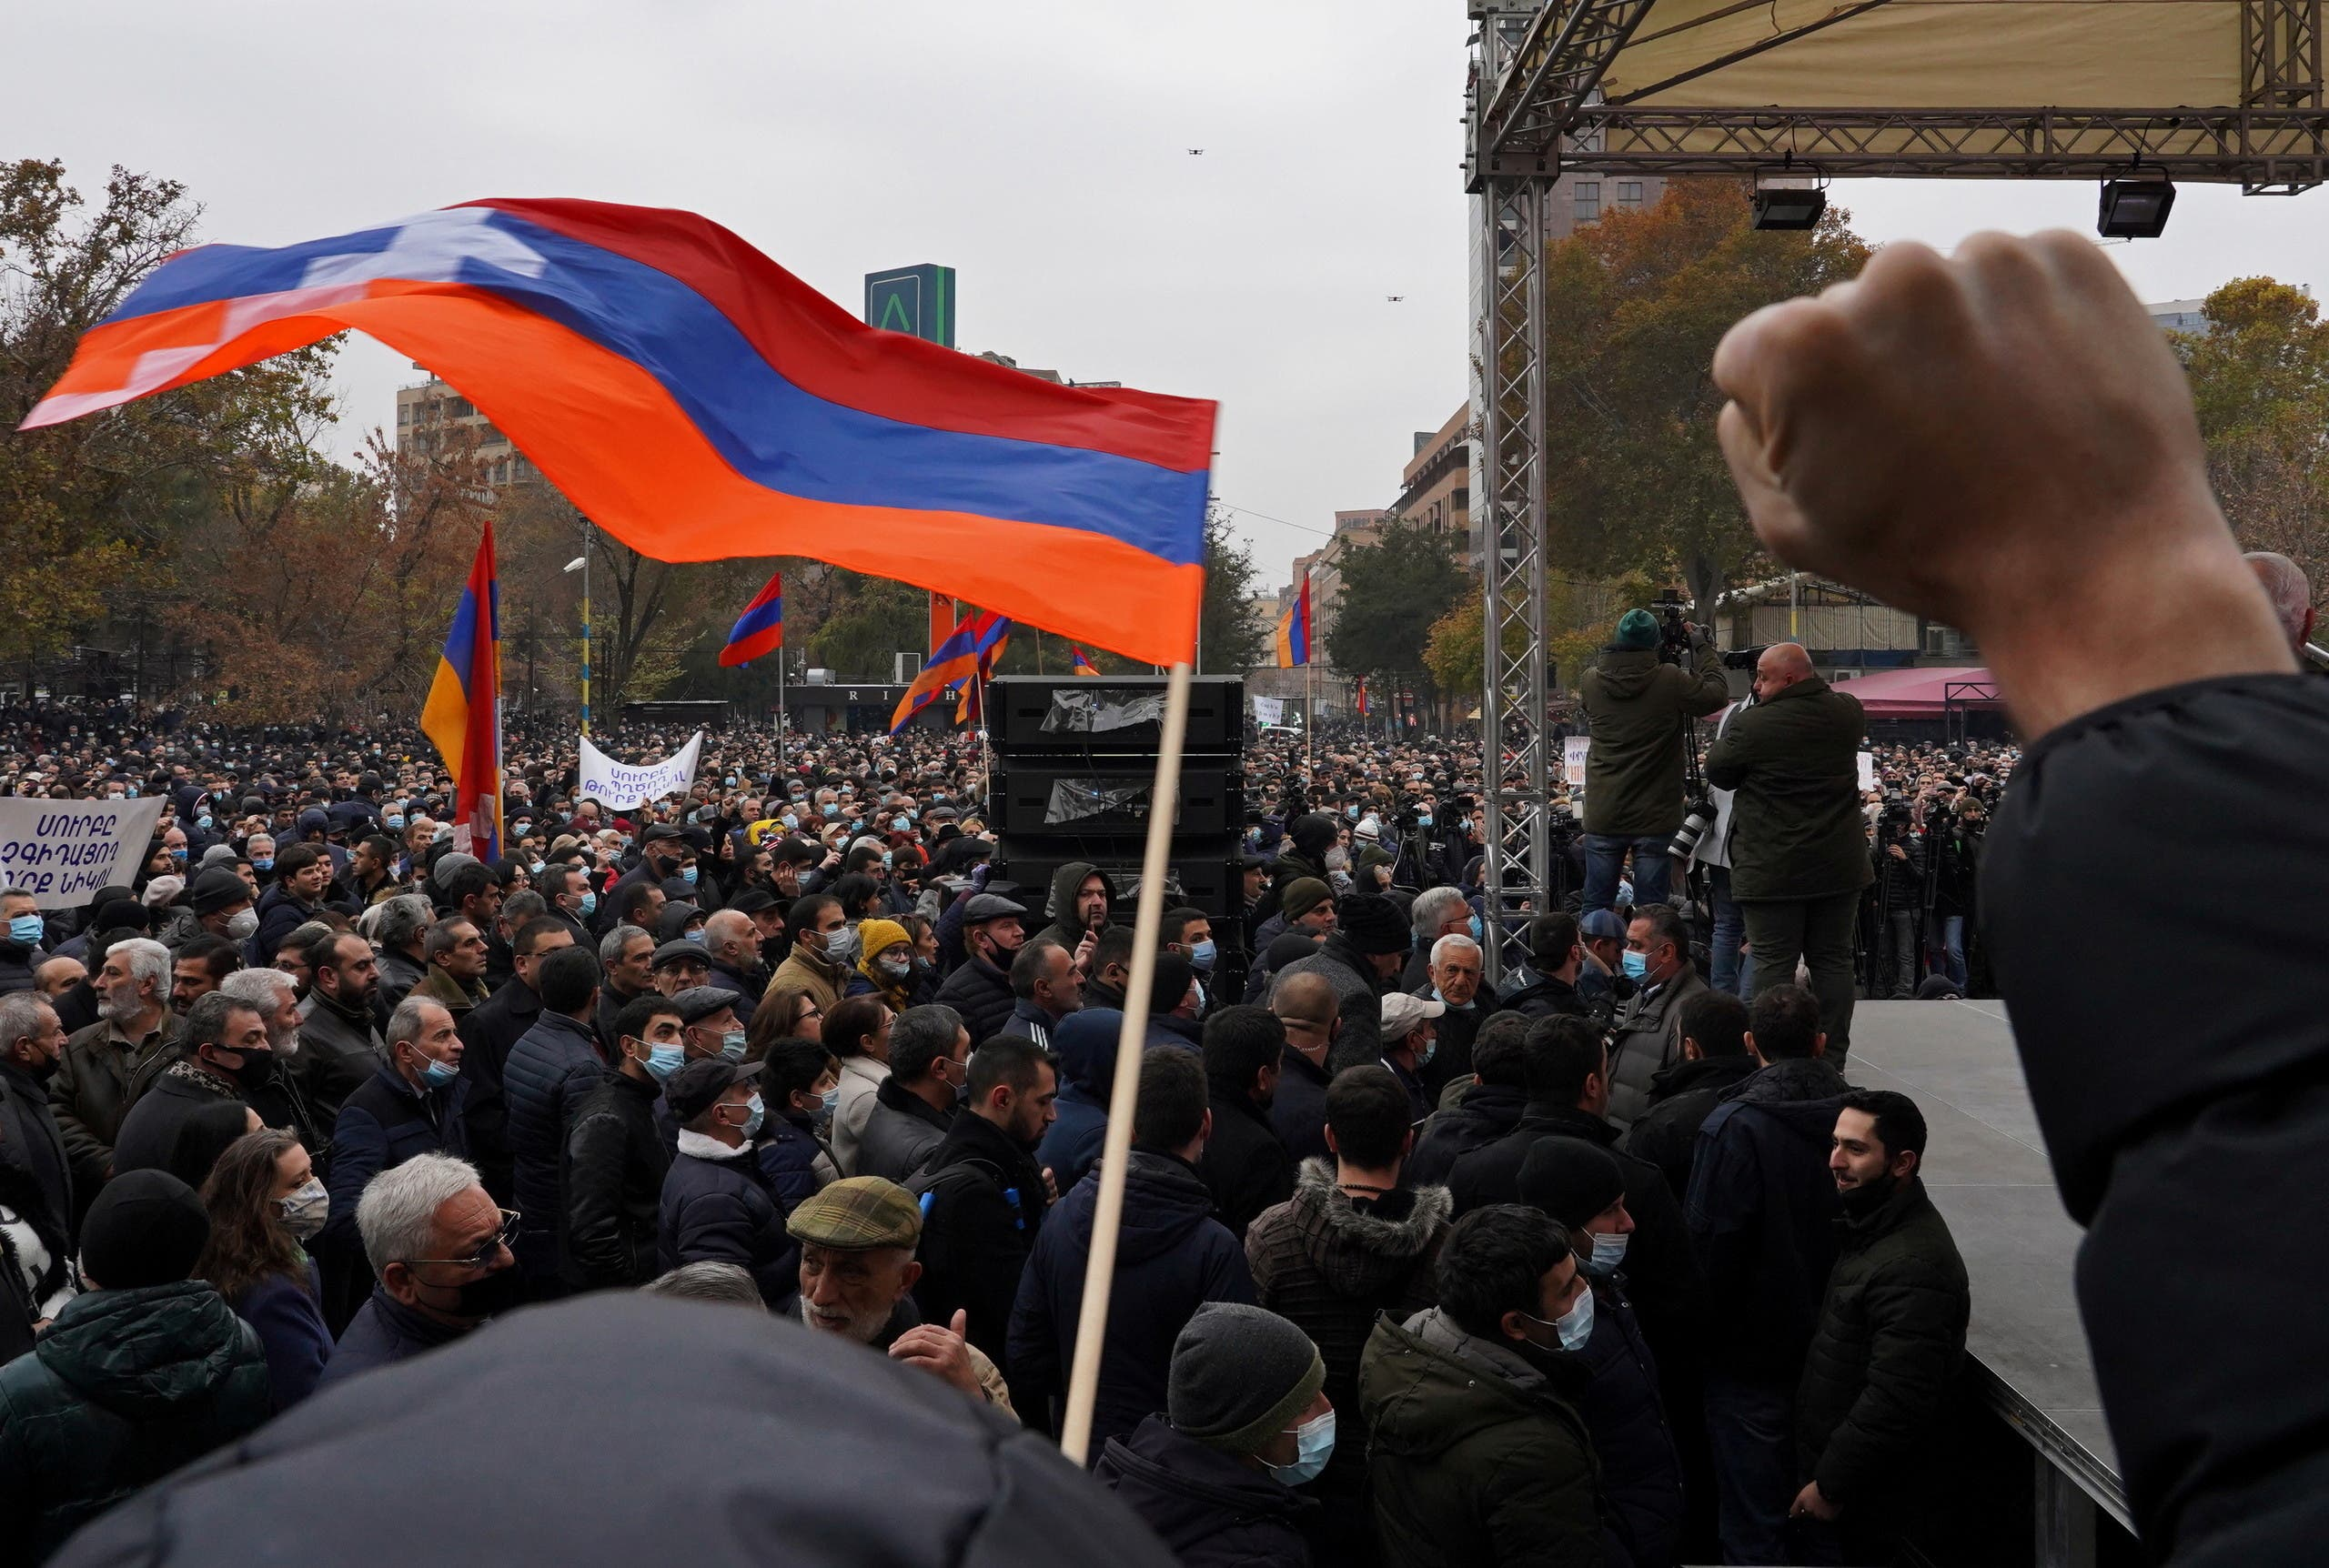 People attend an opposition rally to demand the resignation of Armenian Prime Minister Nikol Pashinyan following the signing of a deal to end a military conflict over Nagorno-Karabakh, in Yerevan, Armenia December 5, 2020. (File photo: Reuters)